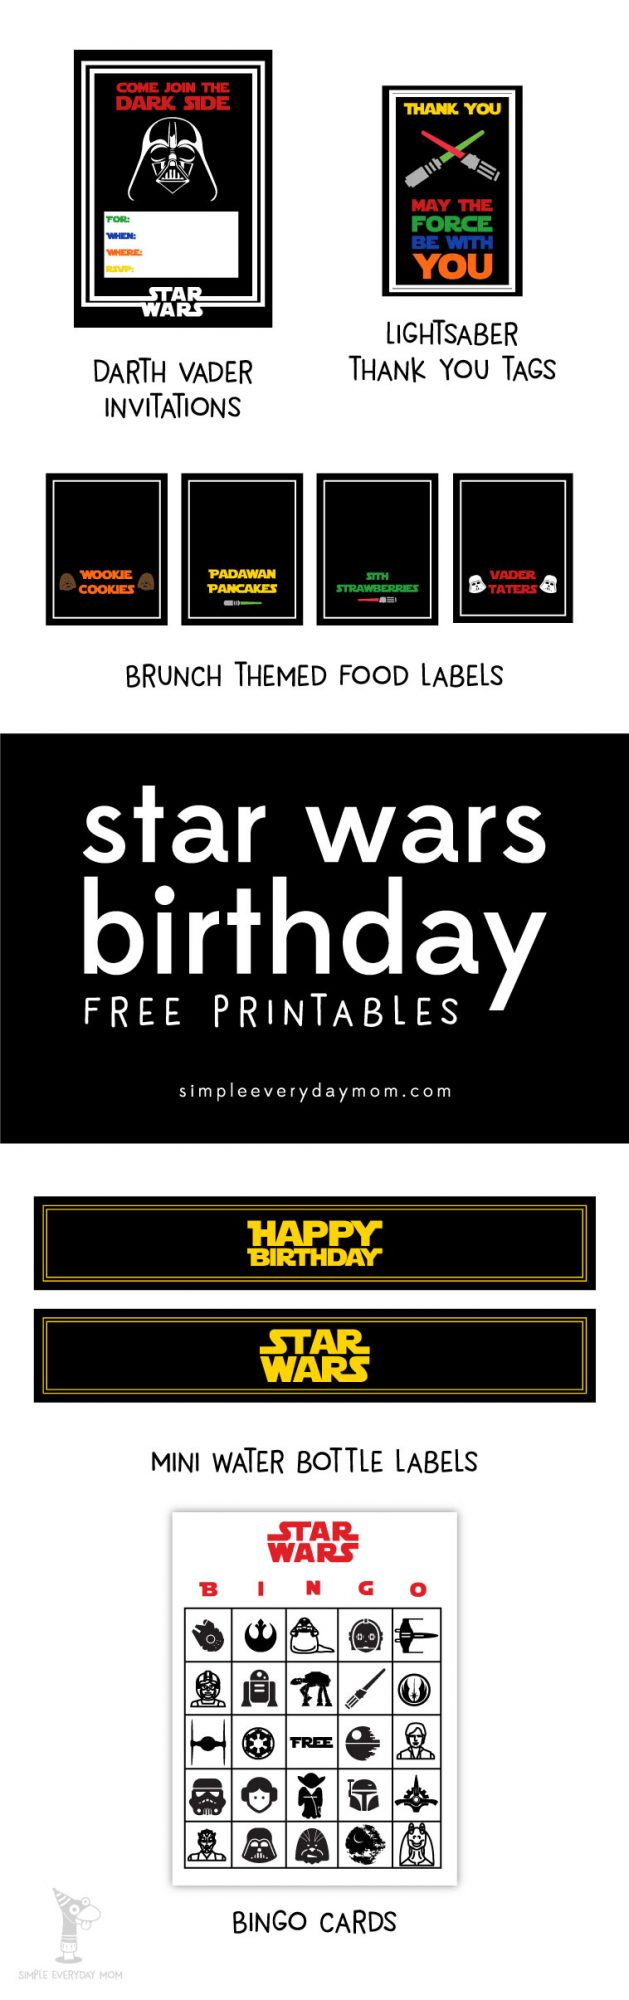 graphic about Star Wars Invitations Free Printable named Totally free Star Wars Occasion Printables: A No-Frustration Direction in direction of a